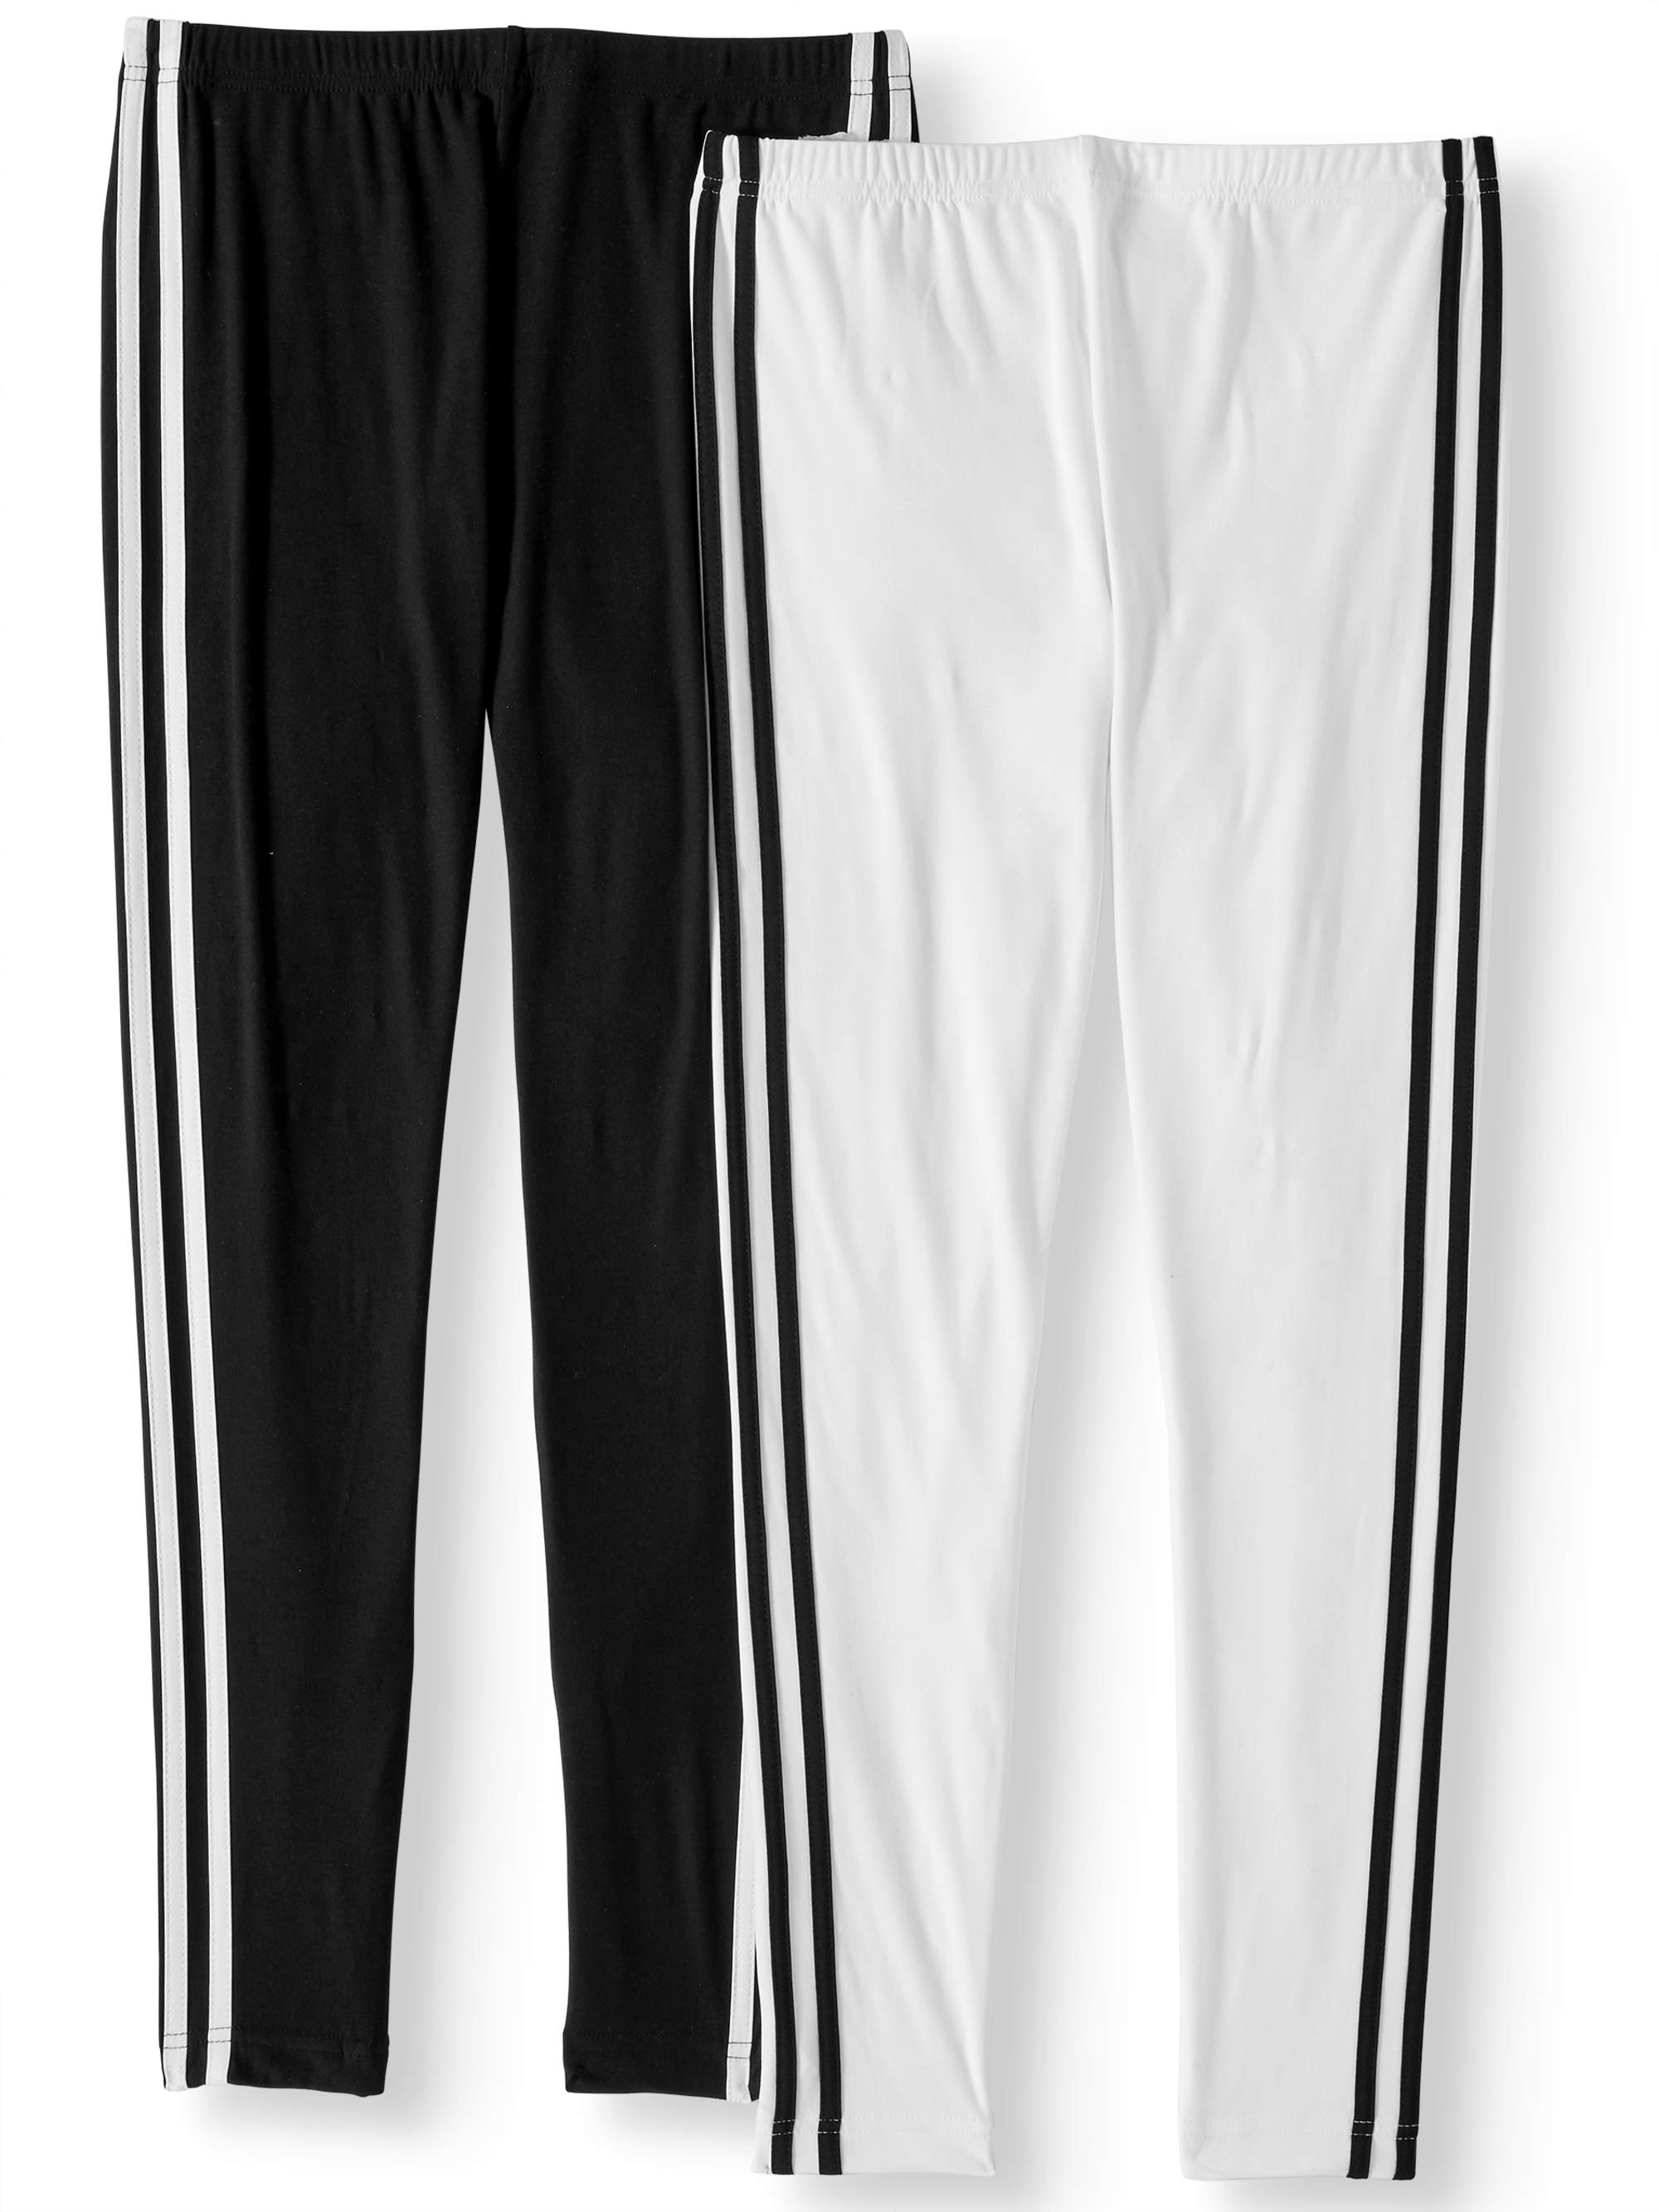 Juniors' Side Stripe Print and Solid Ankle Leggings 2-Pack Value Bundle